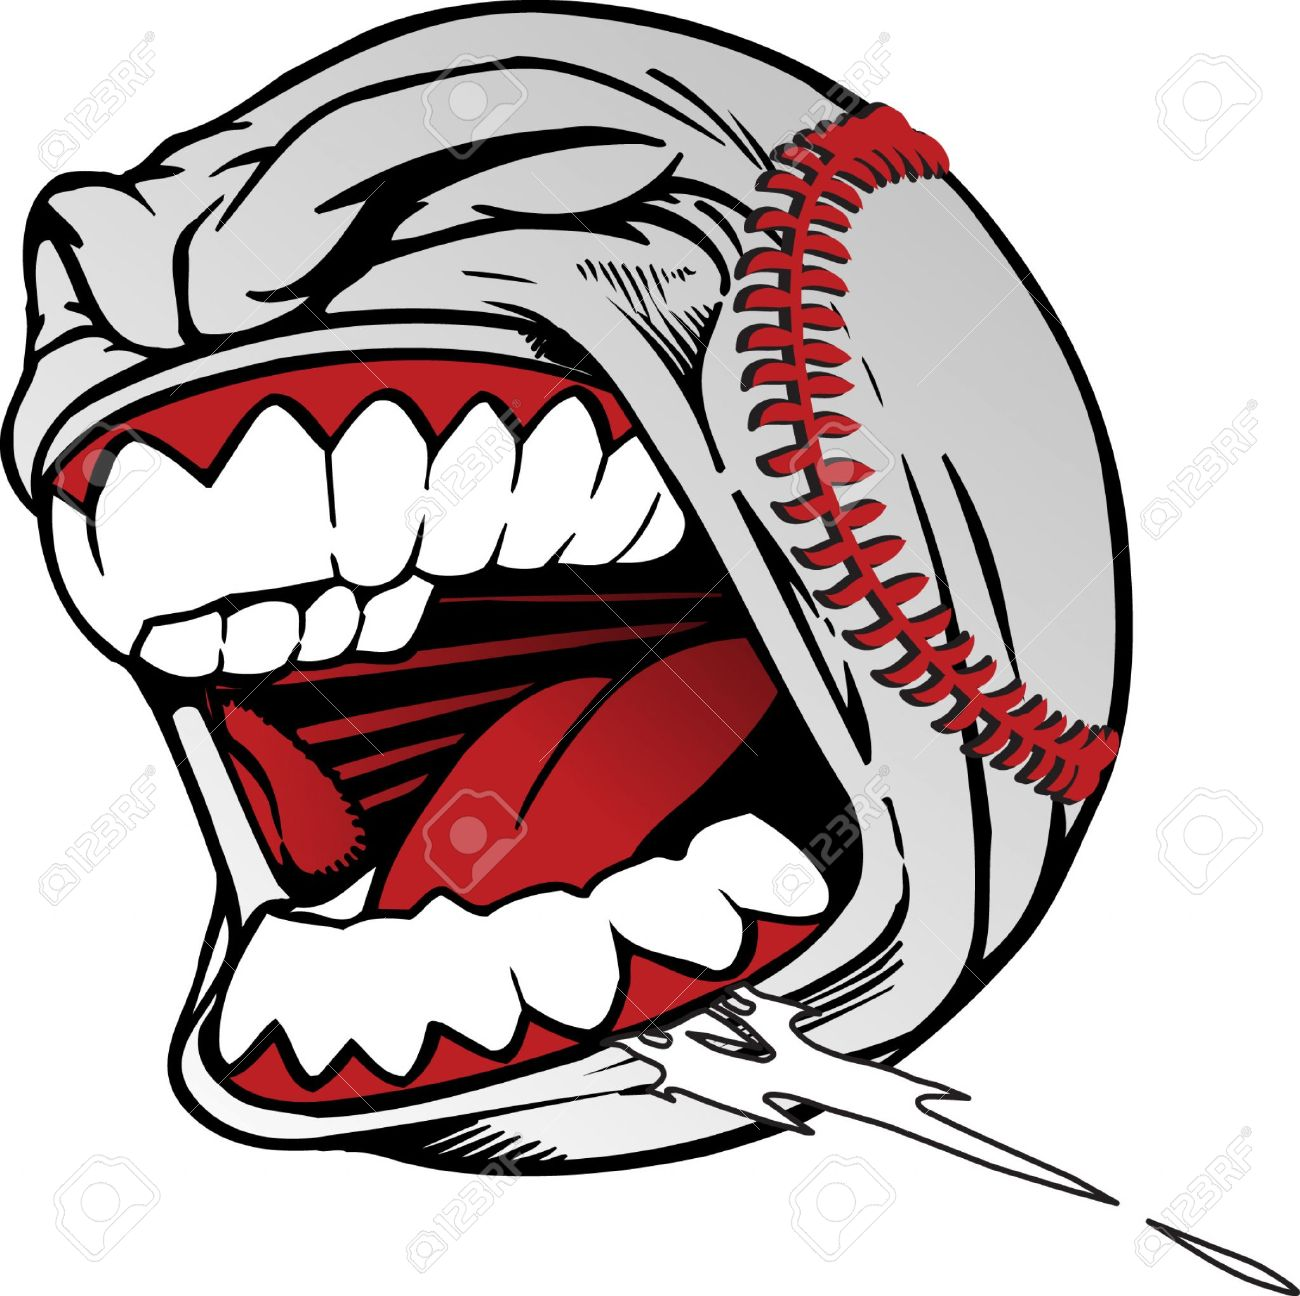 Screaming baseball clipart